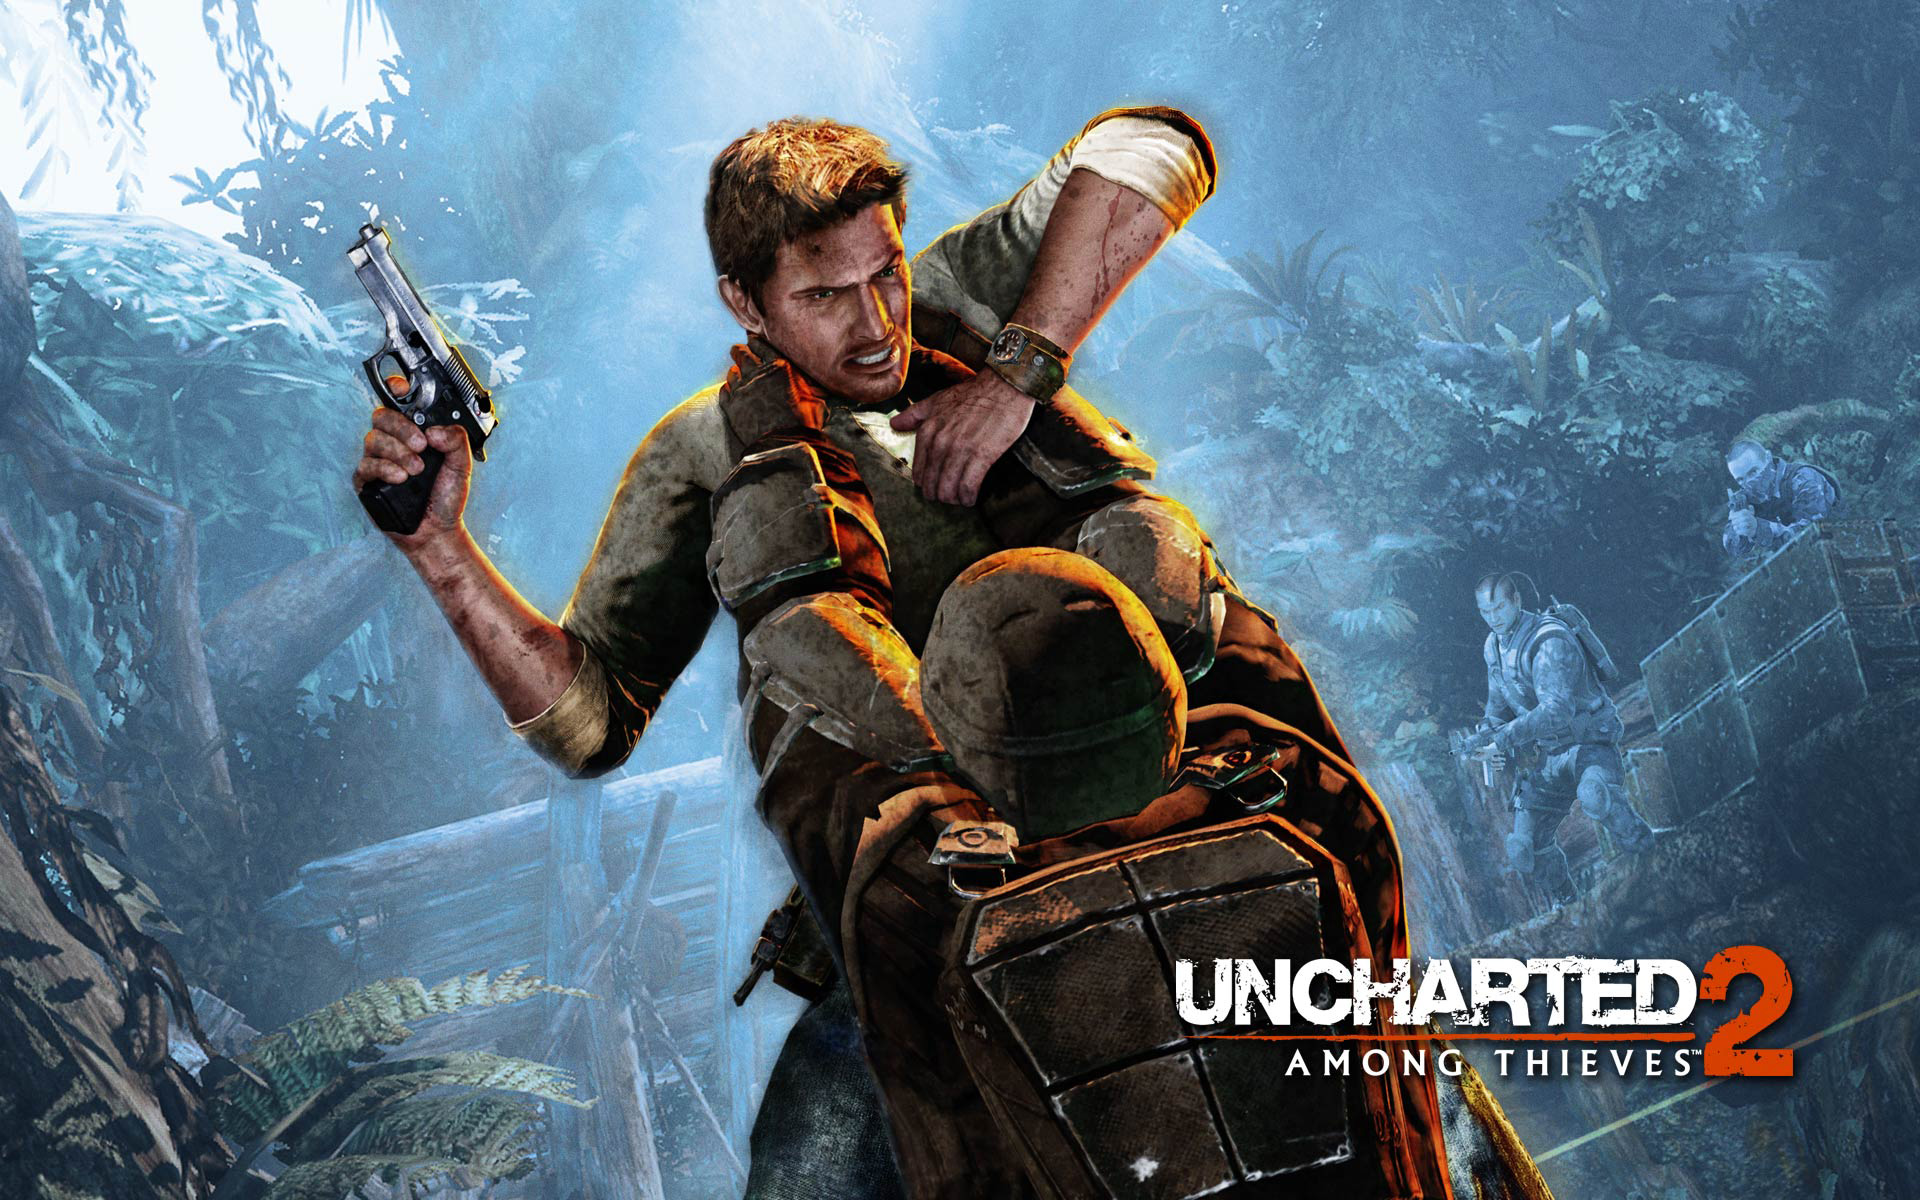 Free Uncharted 2: Among Thieves Wallpaper in 1920x1200